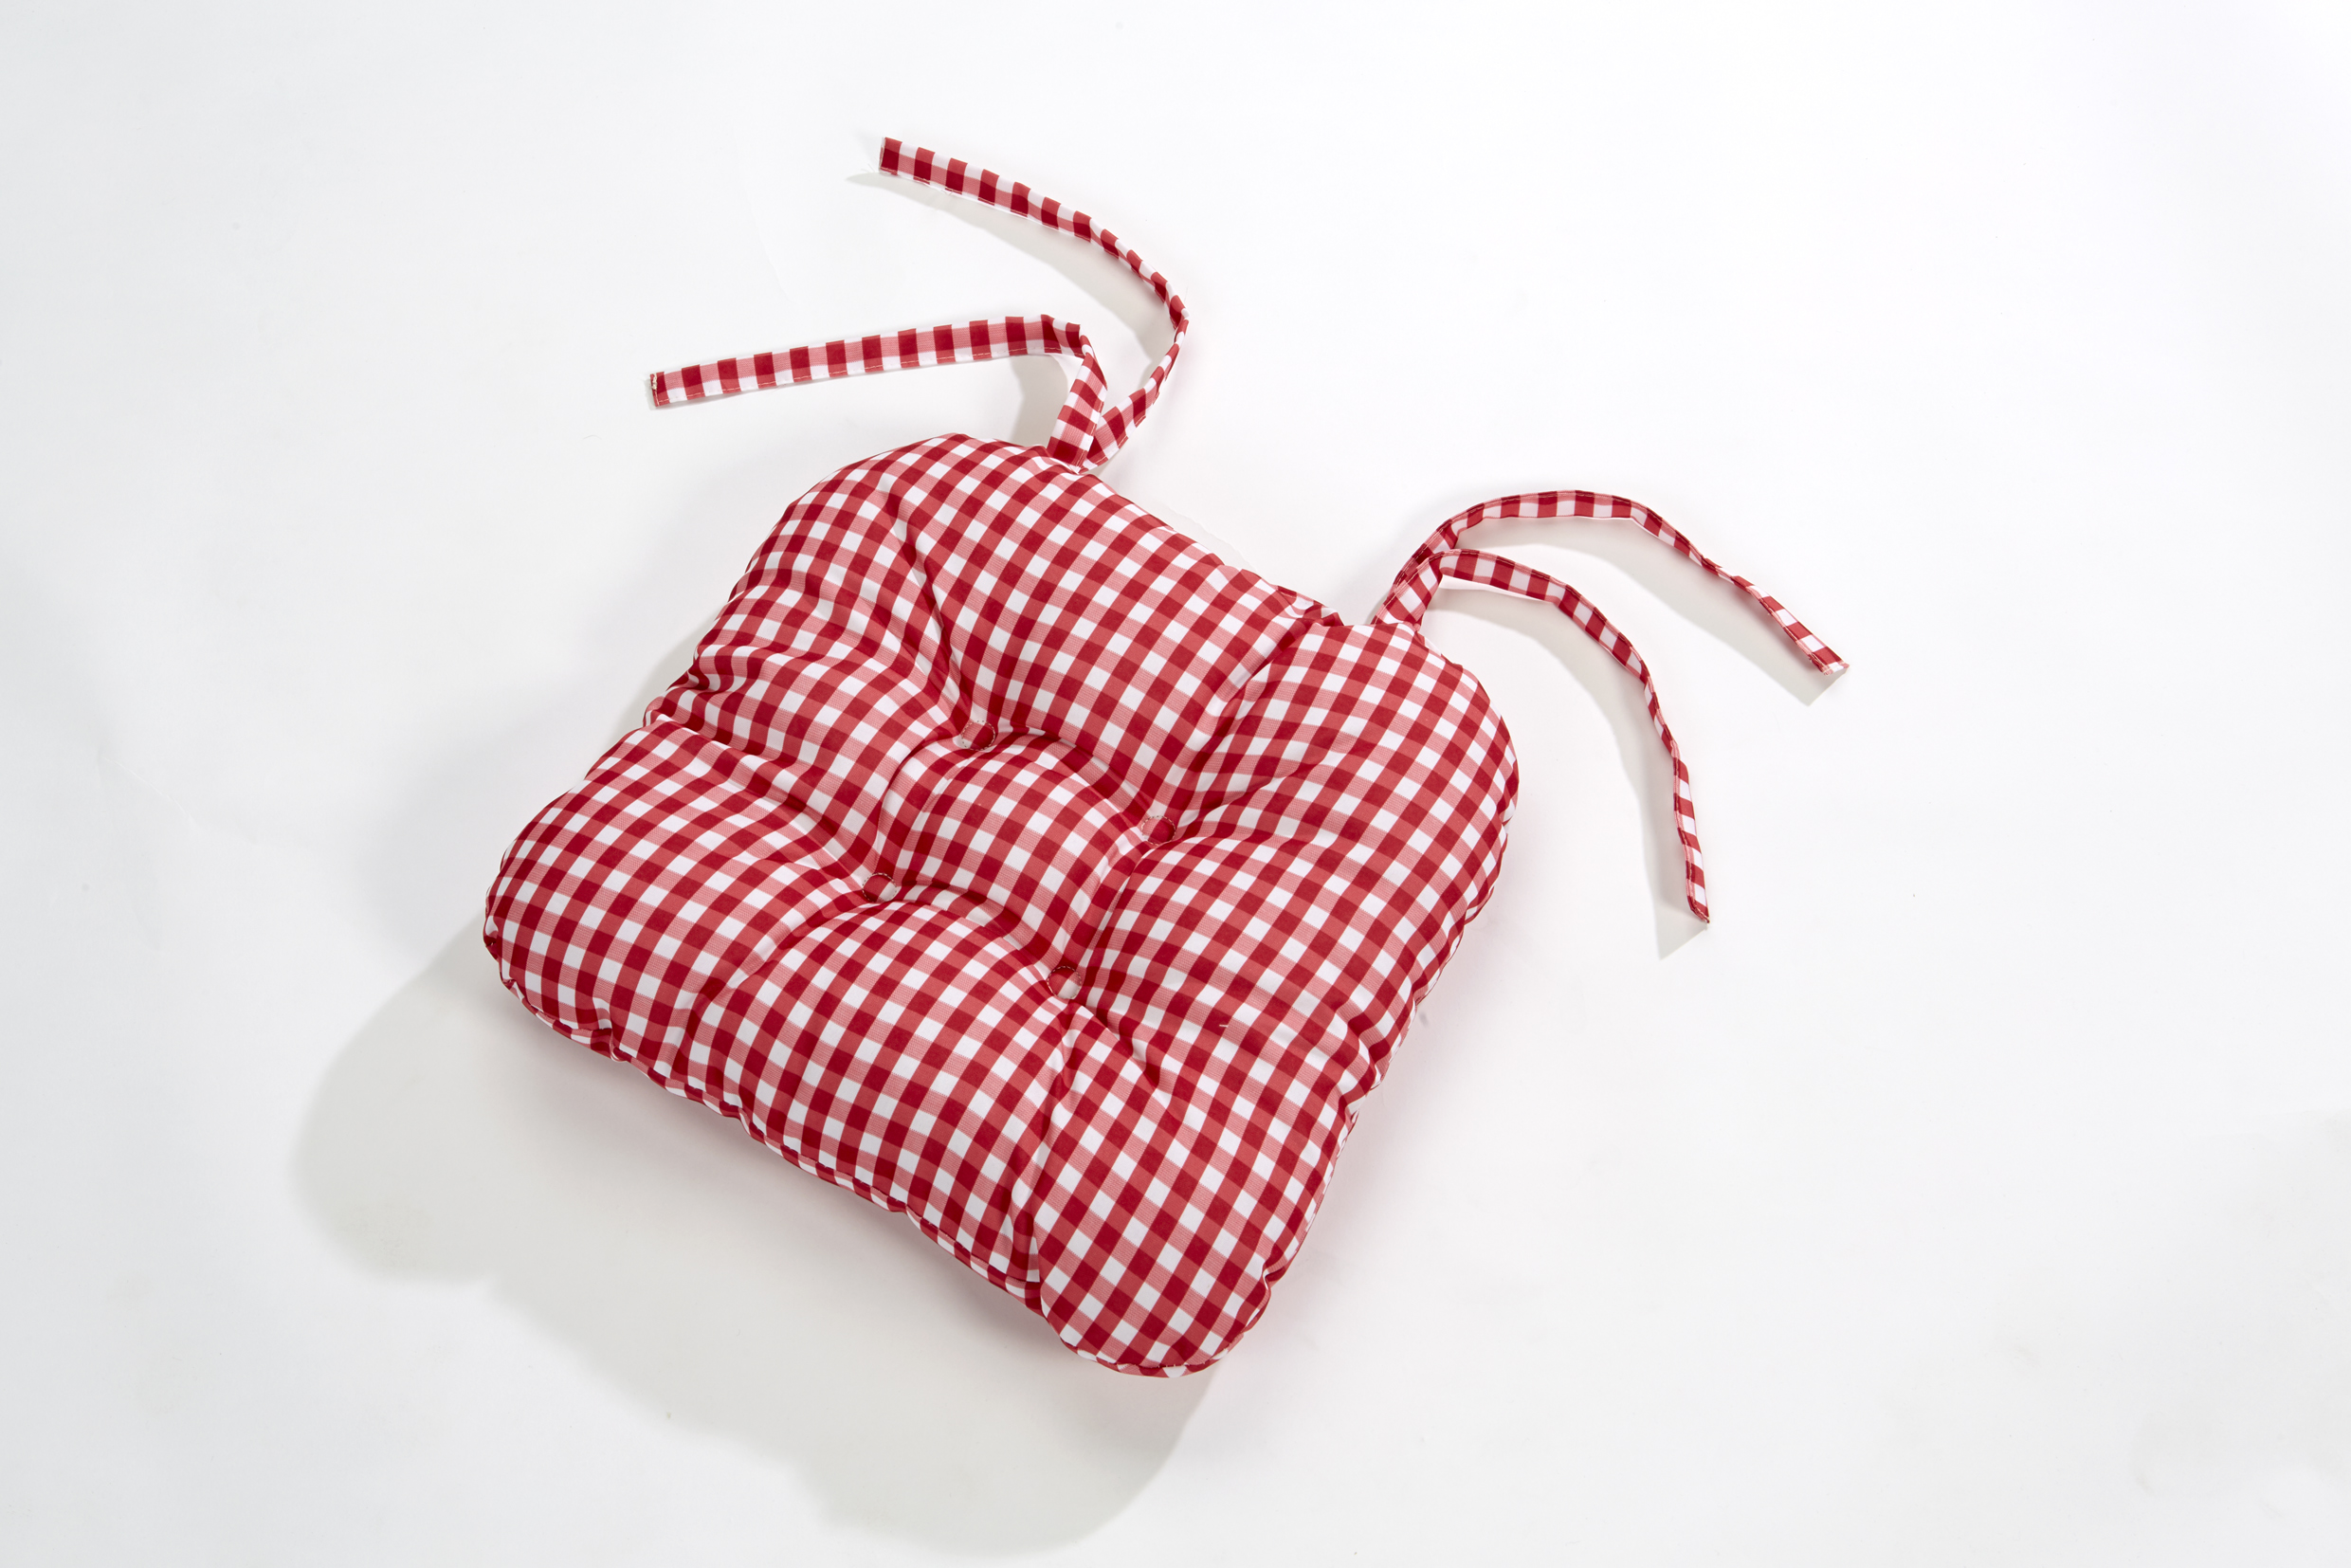 Gingham Chair Gingham Check Quilted Style Seat Pad Cushion Chair Tie On